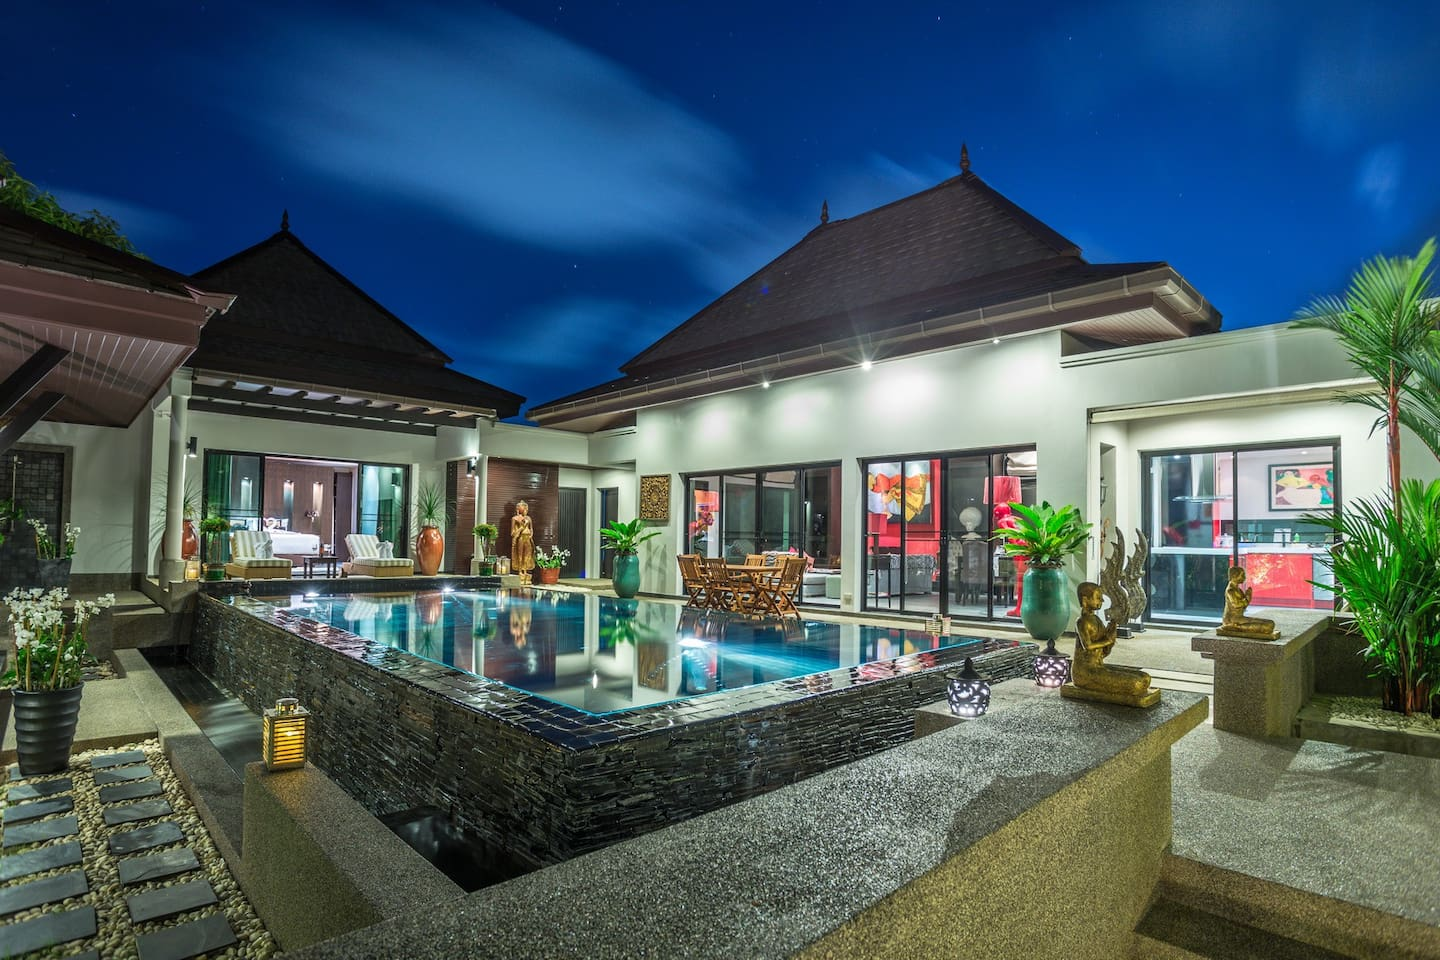 BEAUTIFULLY FURNISHED WITH ALL ORIGINAL ARTWORKS ( OWNERS ART DEALER ) private swimming pool and 1 large living room with Original Art .  We have 3 Air conditions Bedrooms including bathrooms ..